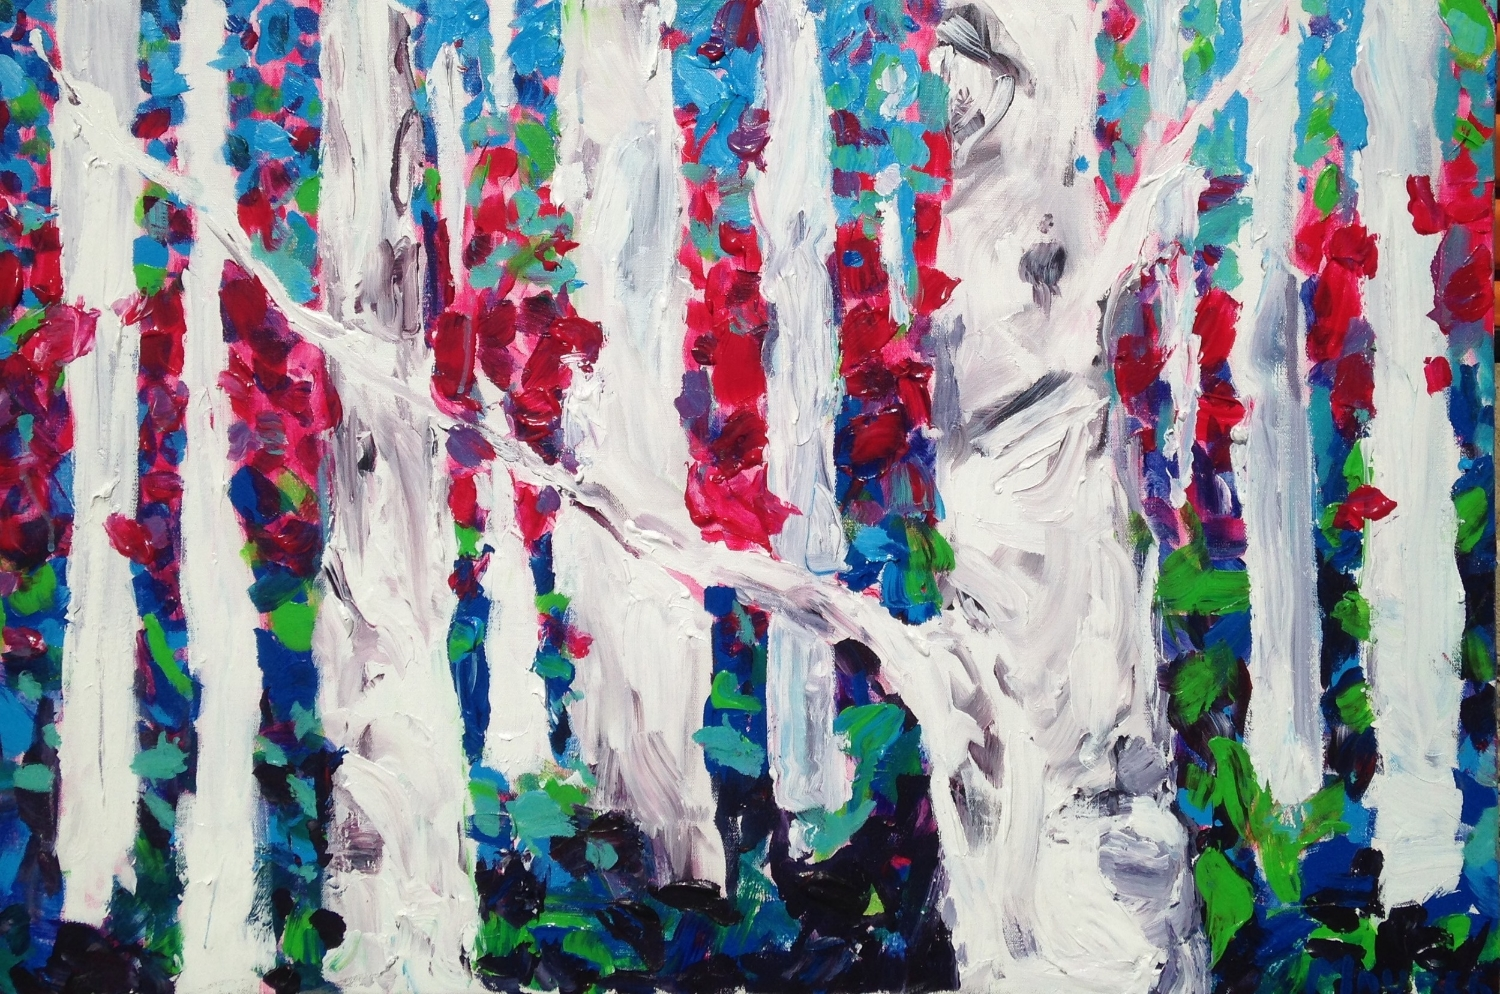 Jodie Maurer - Birch Tree Forest, Pink, Purple and Blue, 24x30in $800 acrylic.jpg